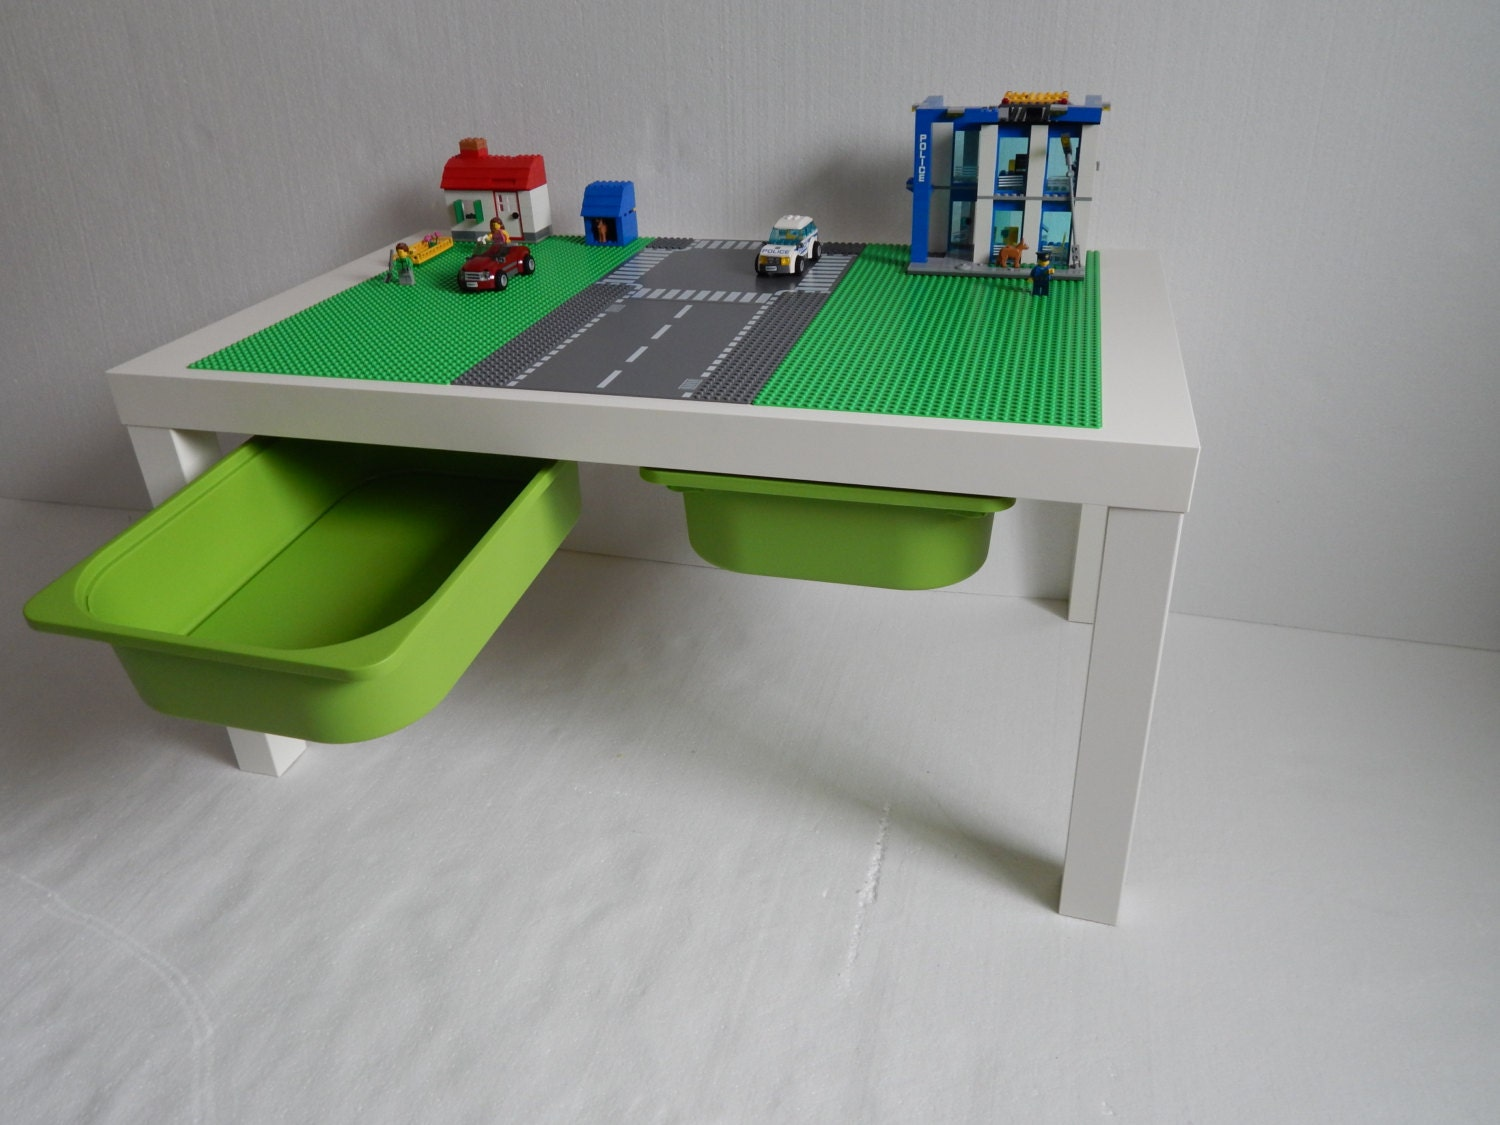 Large lego storage table 30x20 green with road for Table design lego